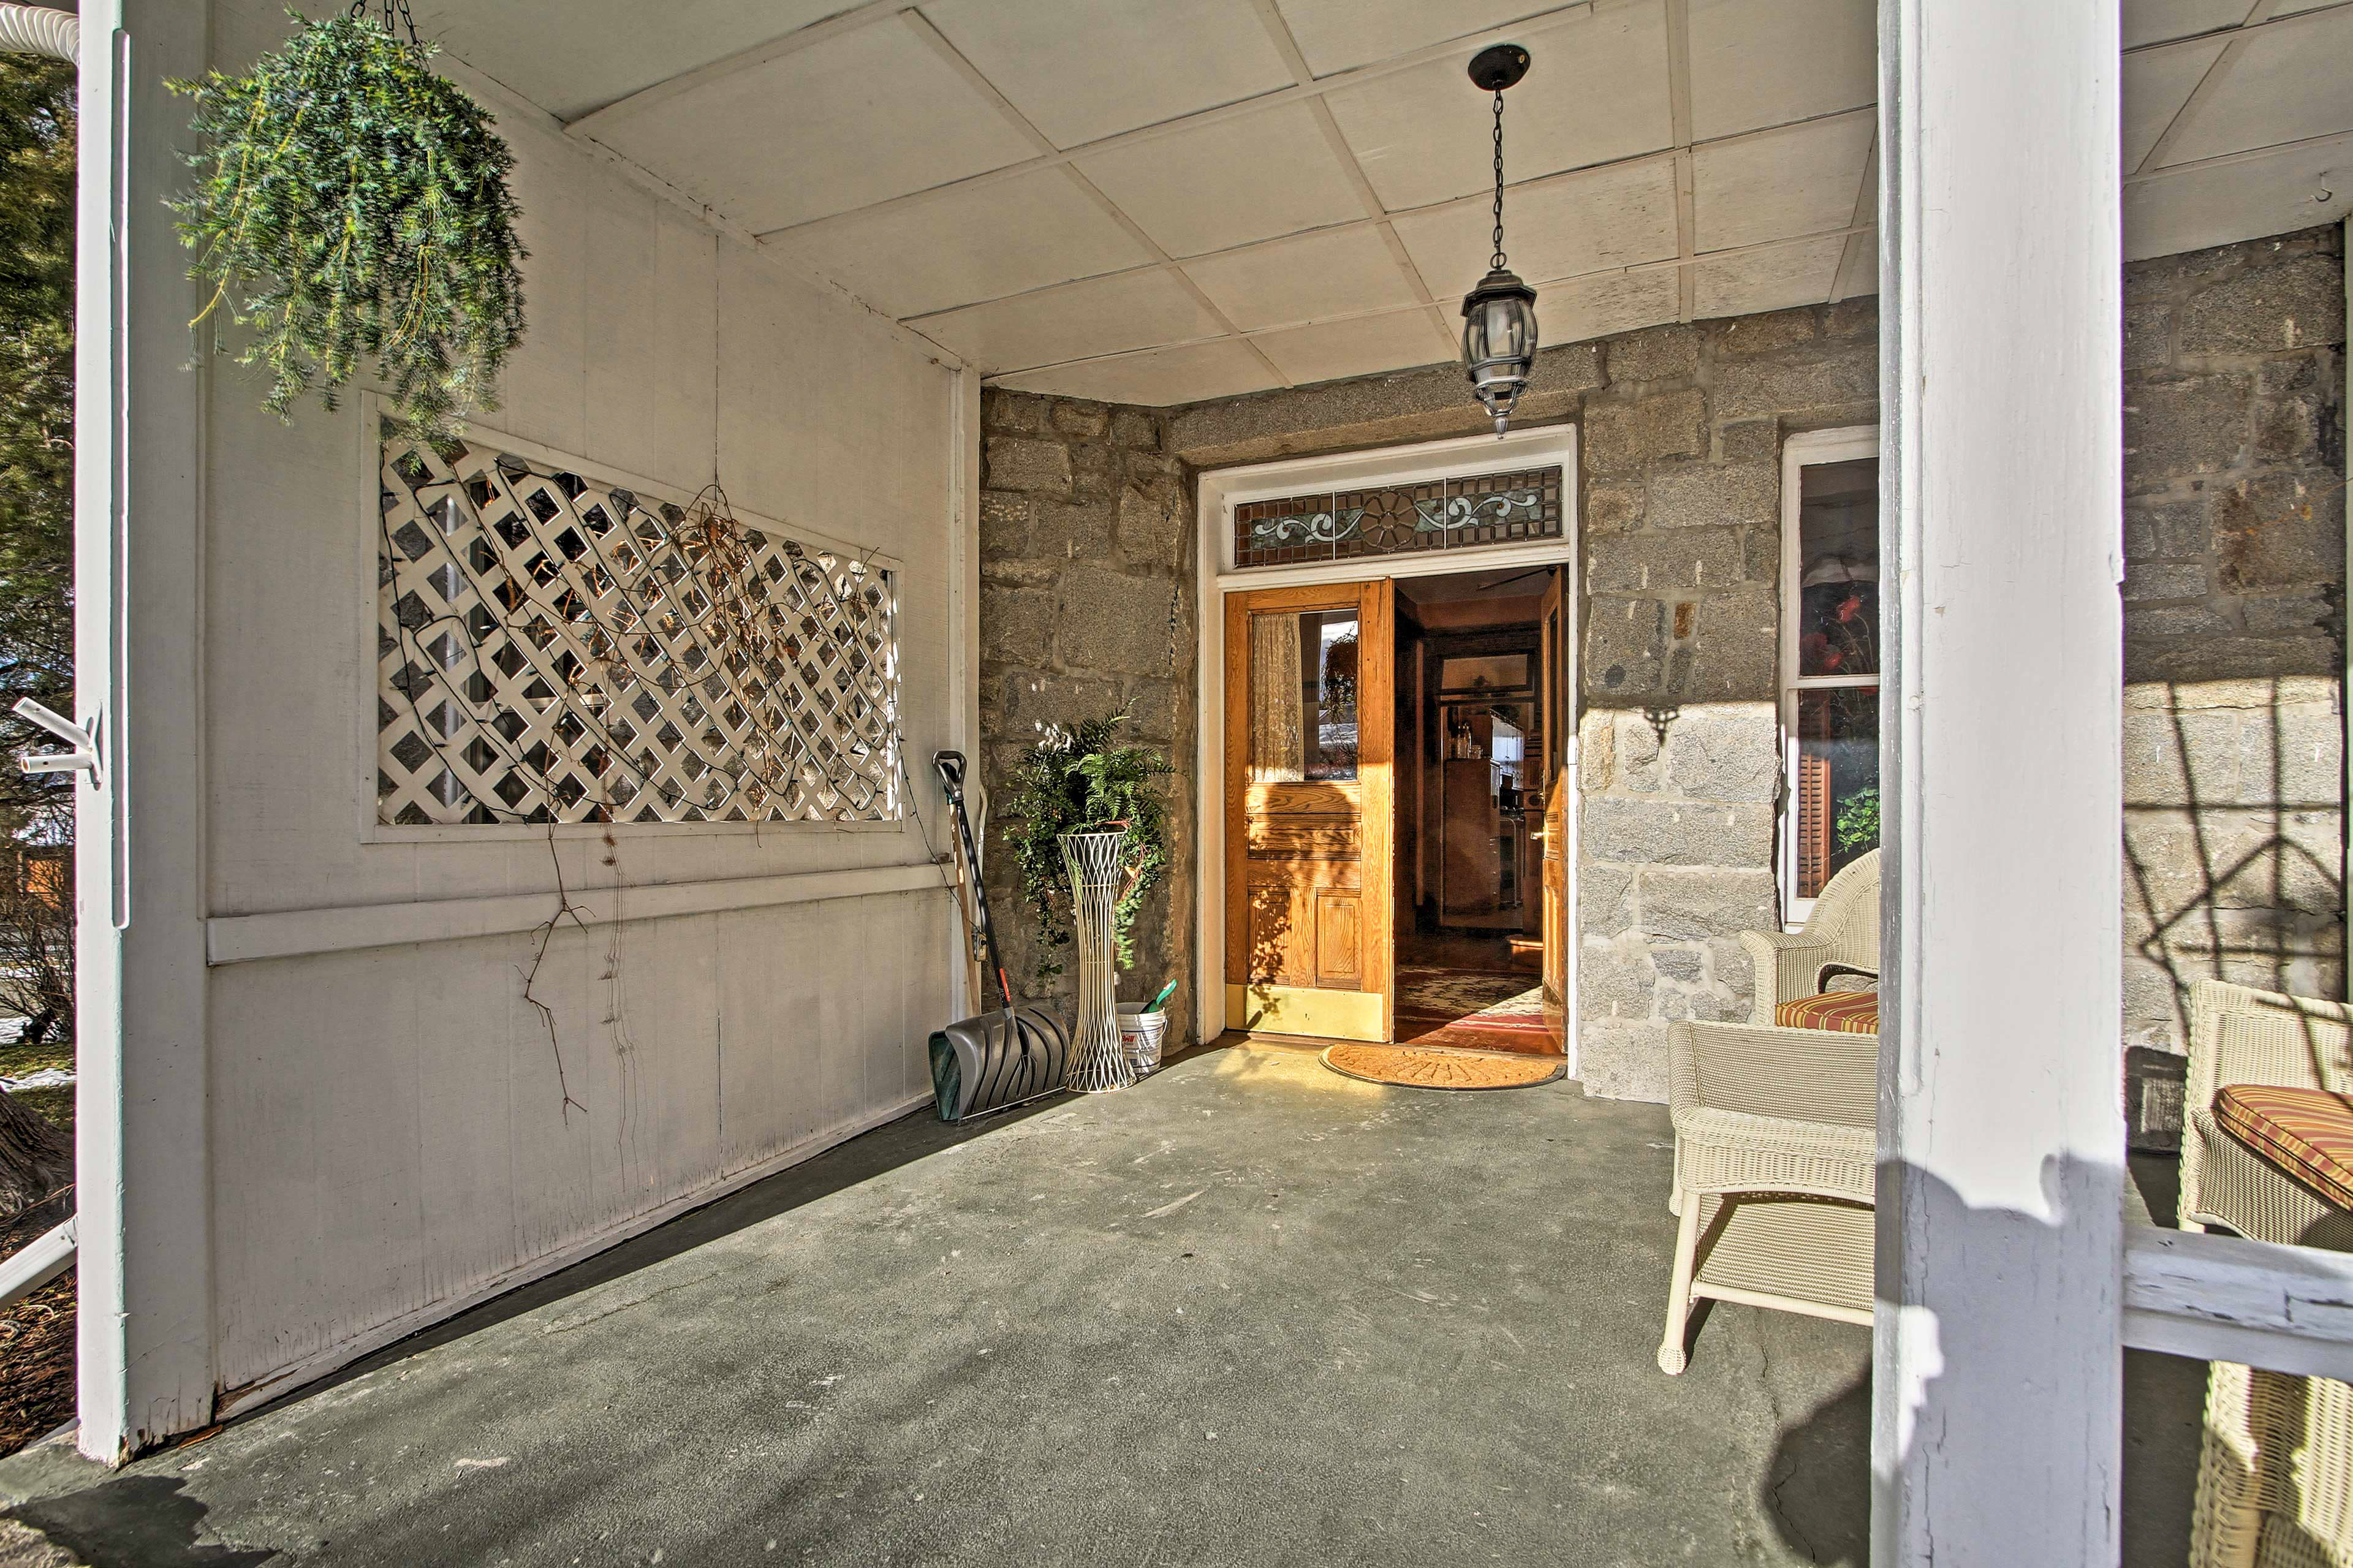 Upon arrival, you'll be welcomed by the home's cozy furnished porch.